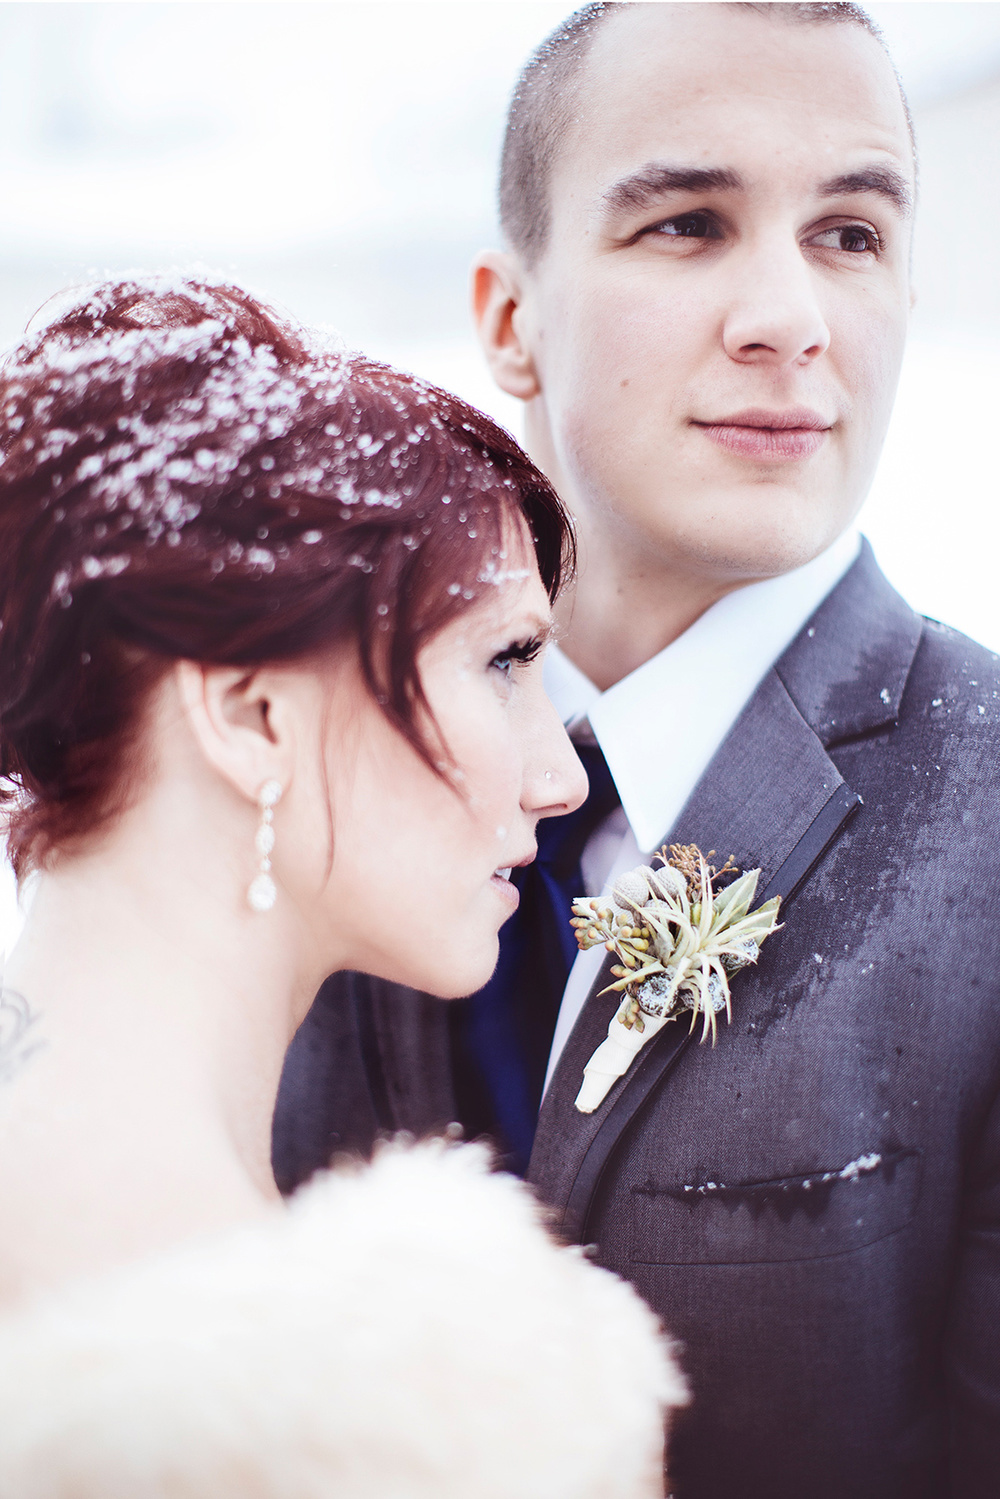 vev_studios_portland_wedding_photographer_arnold0375.jpg